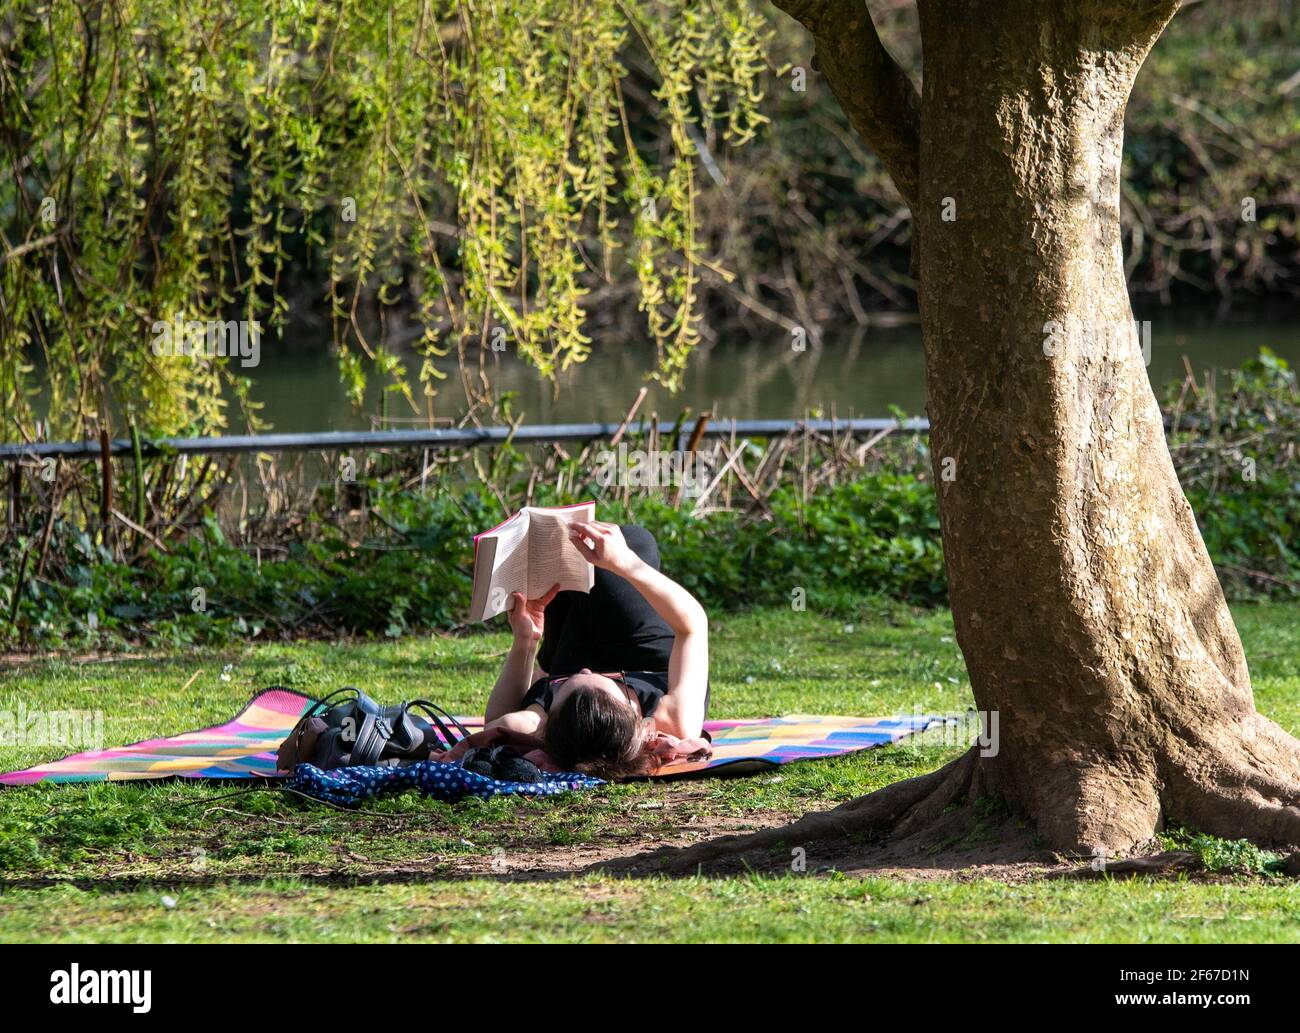 leamington-spa-warwickshire-uk-30th-march-2021-all-people-young-and-old-headed-out-onto-the-fields-to-bathe-in-a-sudden-shock-of-british-sun-today-perfectly-timed-with-a-reduction-in-lockdown-restrictions-allowing-more-people-to-gather-outdoors-credit-ryan-underwood-alamy-live-news-2F67D1N.jpg